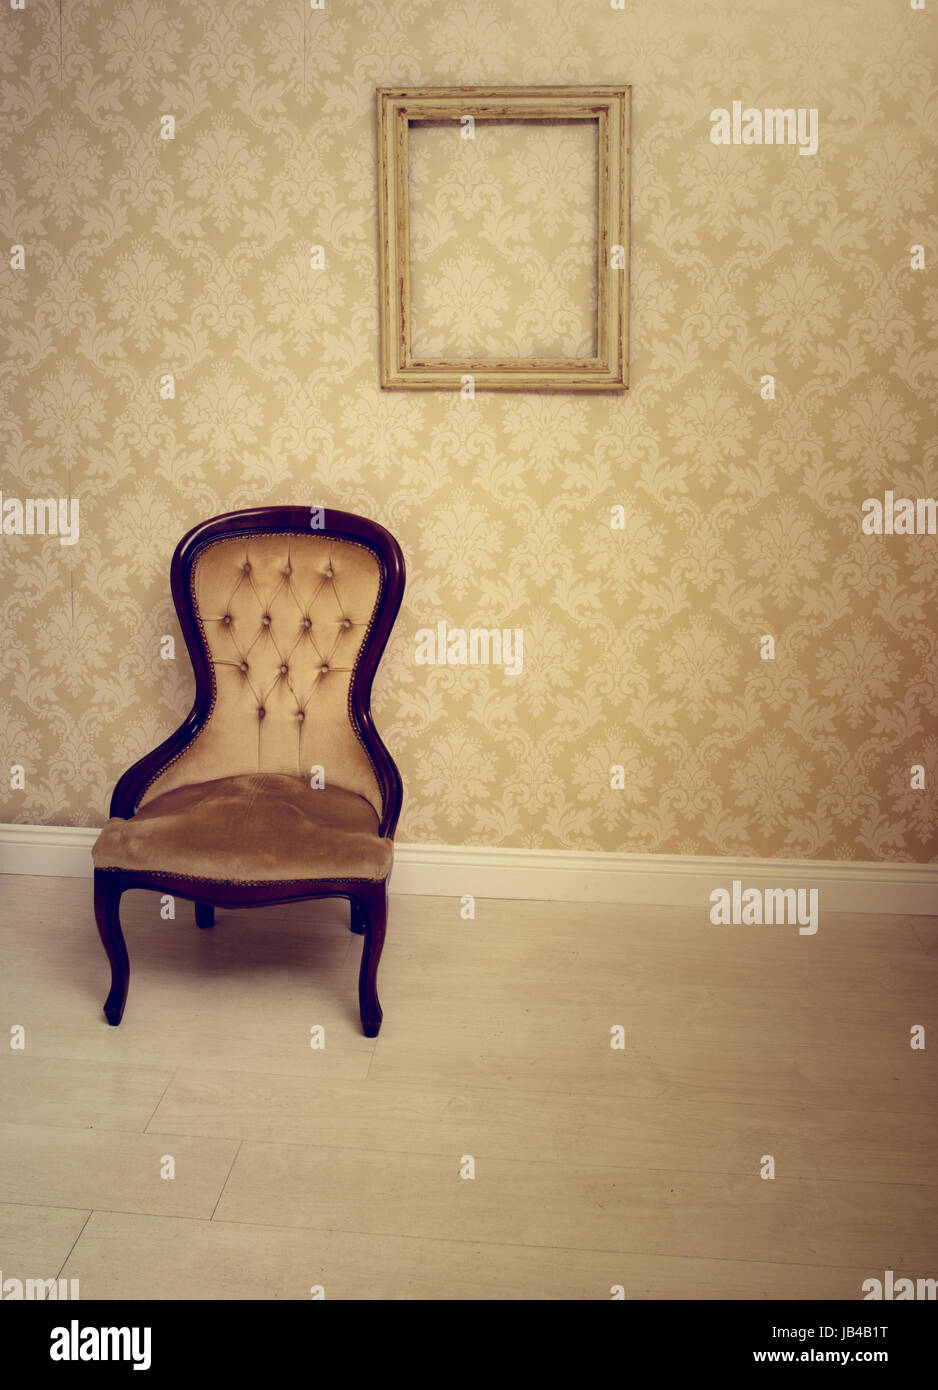 Antique upholstered chair in a wallpapered room with an empty vintage  wooden picture frame hanging on the wall suitable as an interior decorating  background - Antique Upholstered Chair In A Wallpapered Room With An Empty